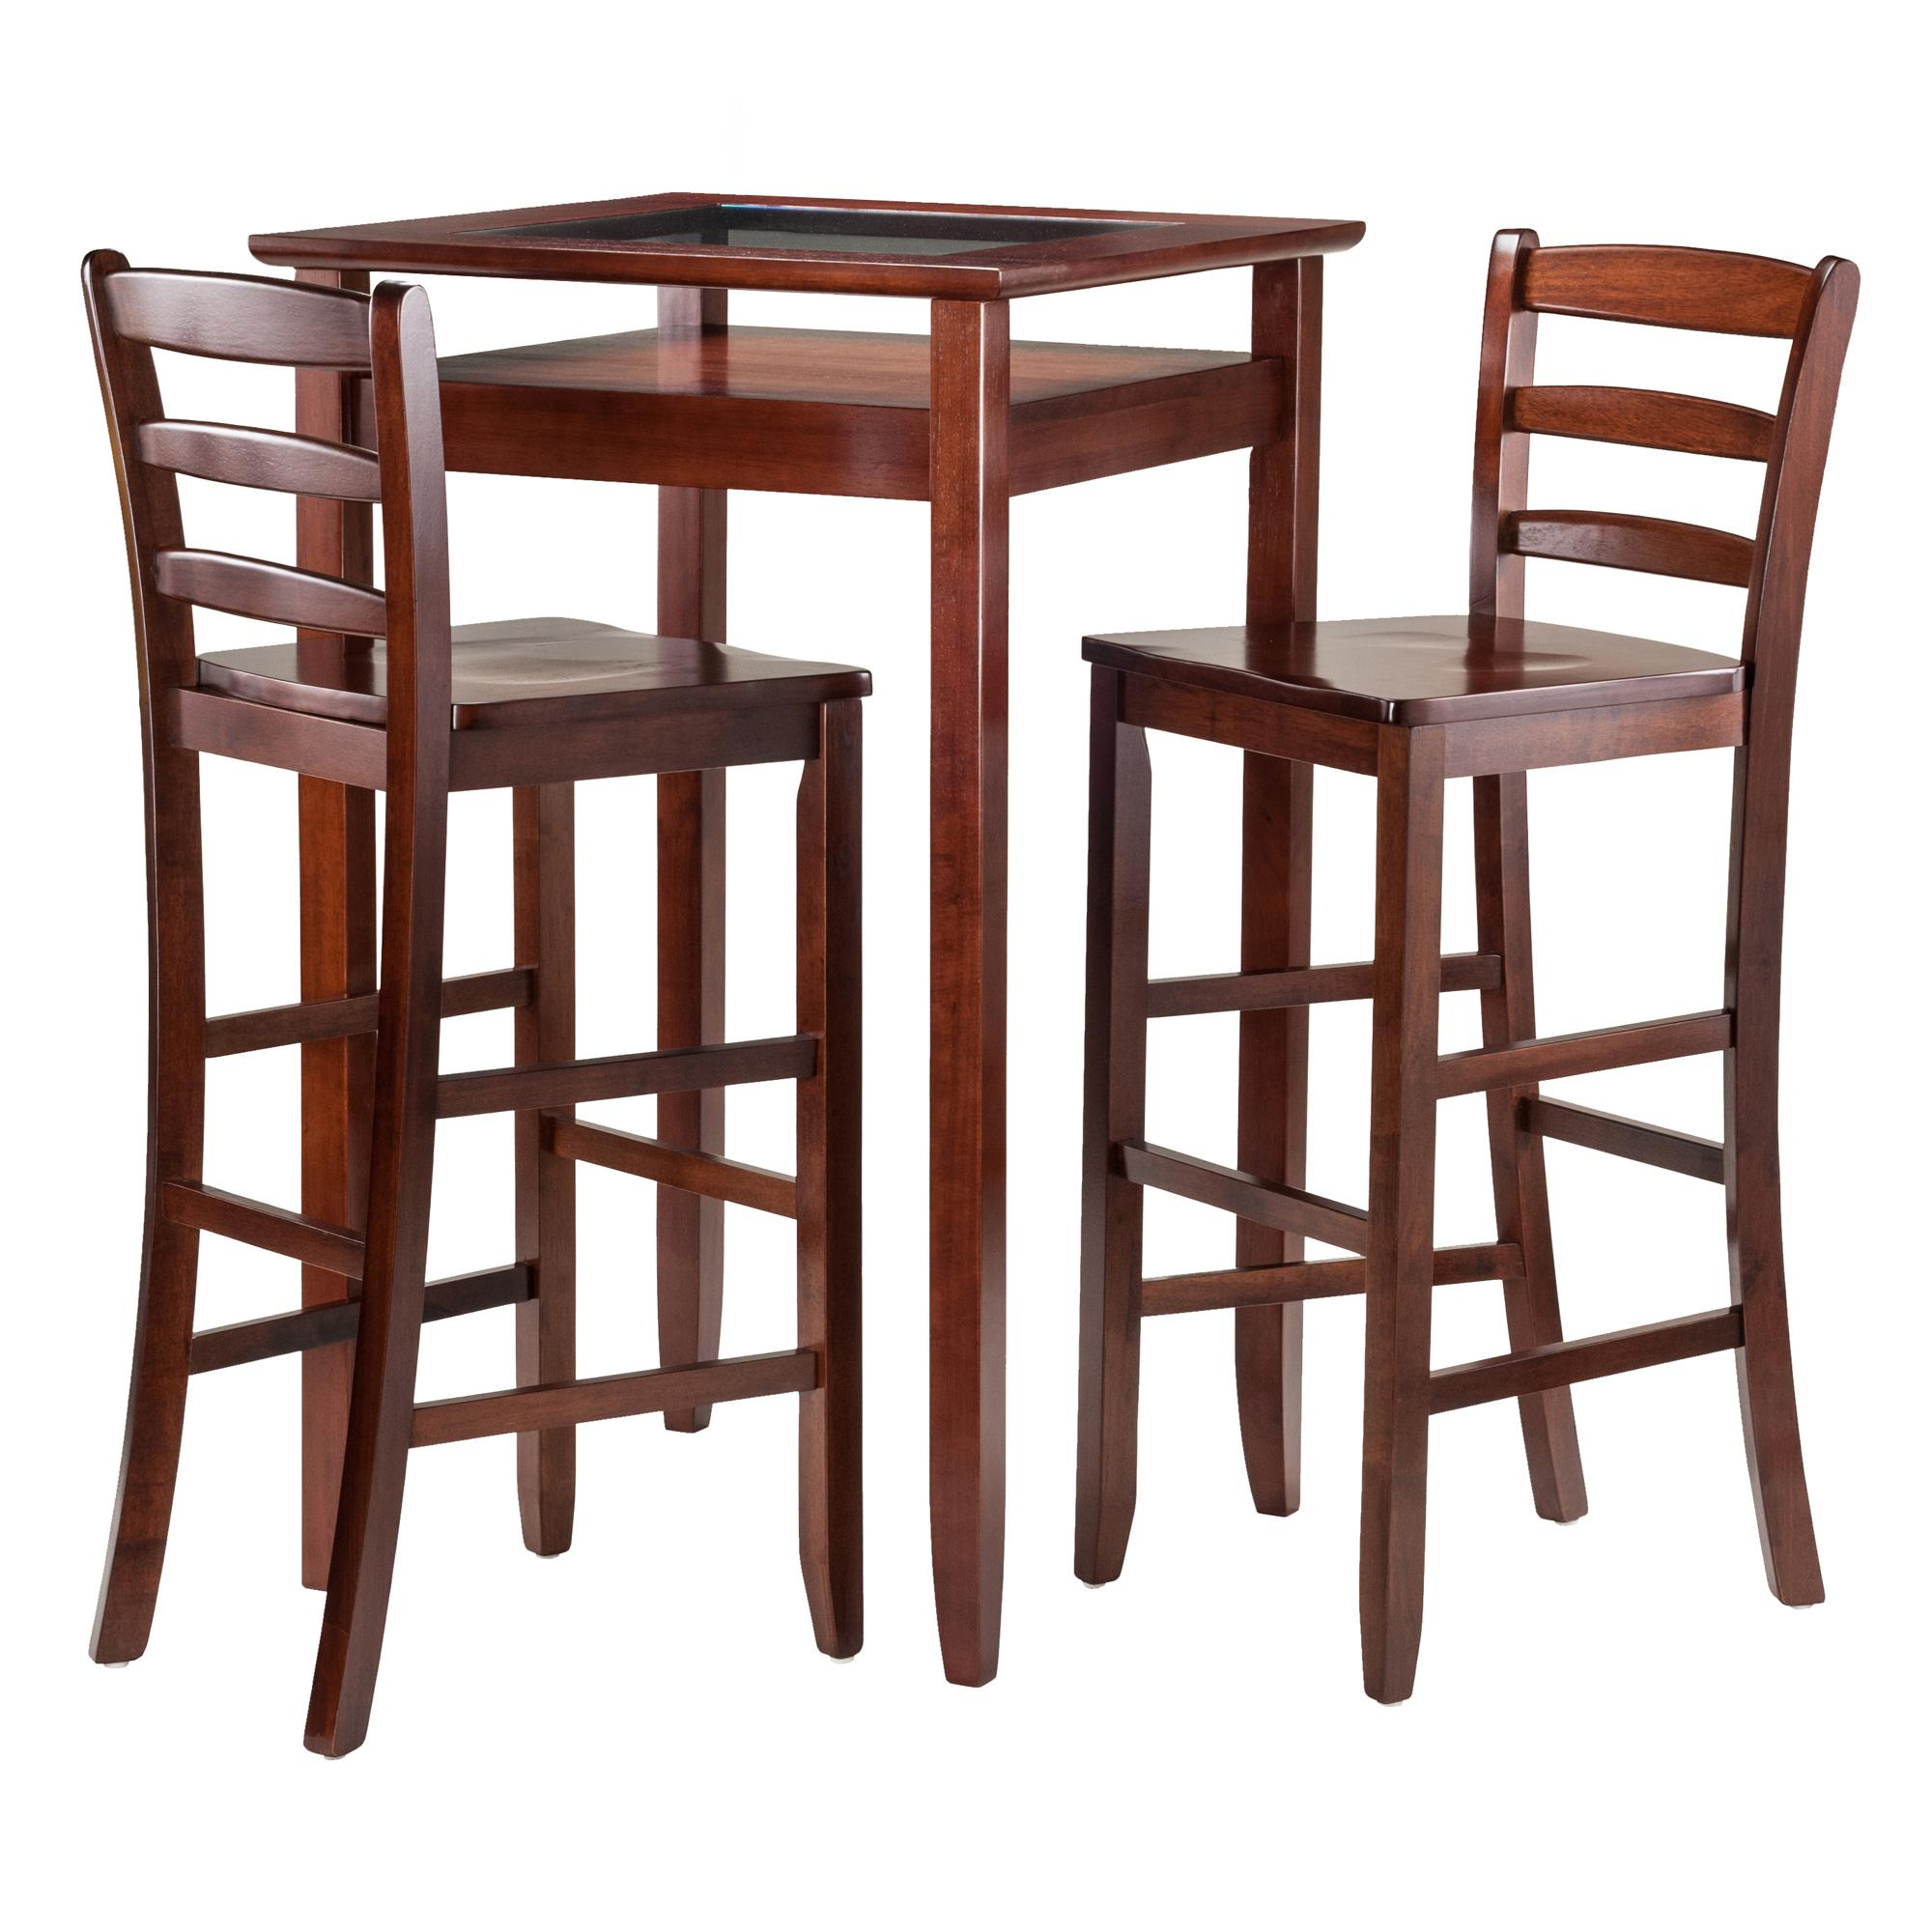 Amazon Winsome Wood Halo 3 Piece Pub Table Set with 2 Ladder